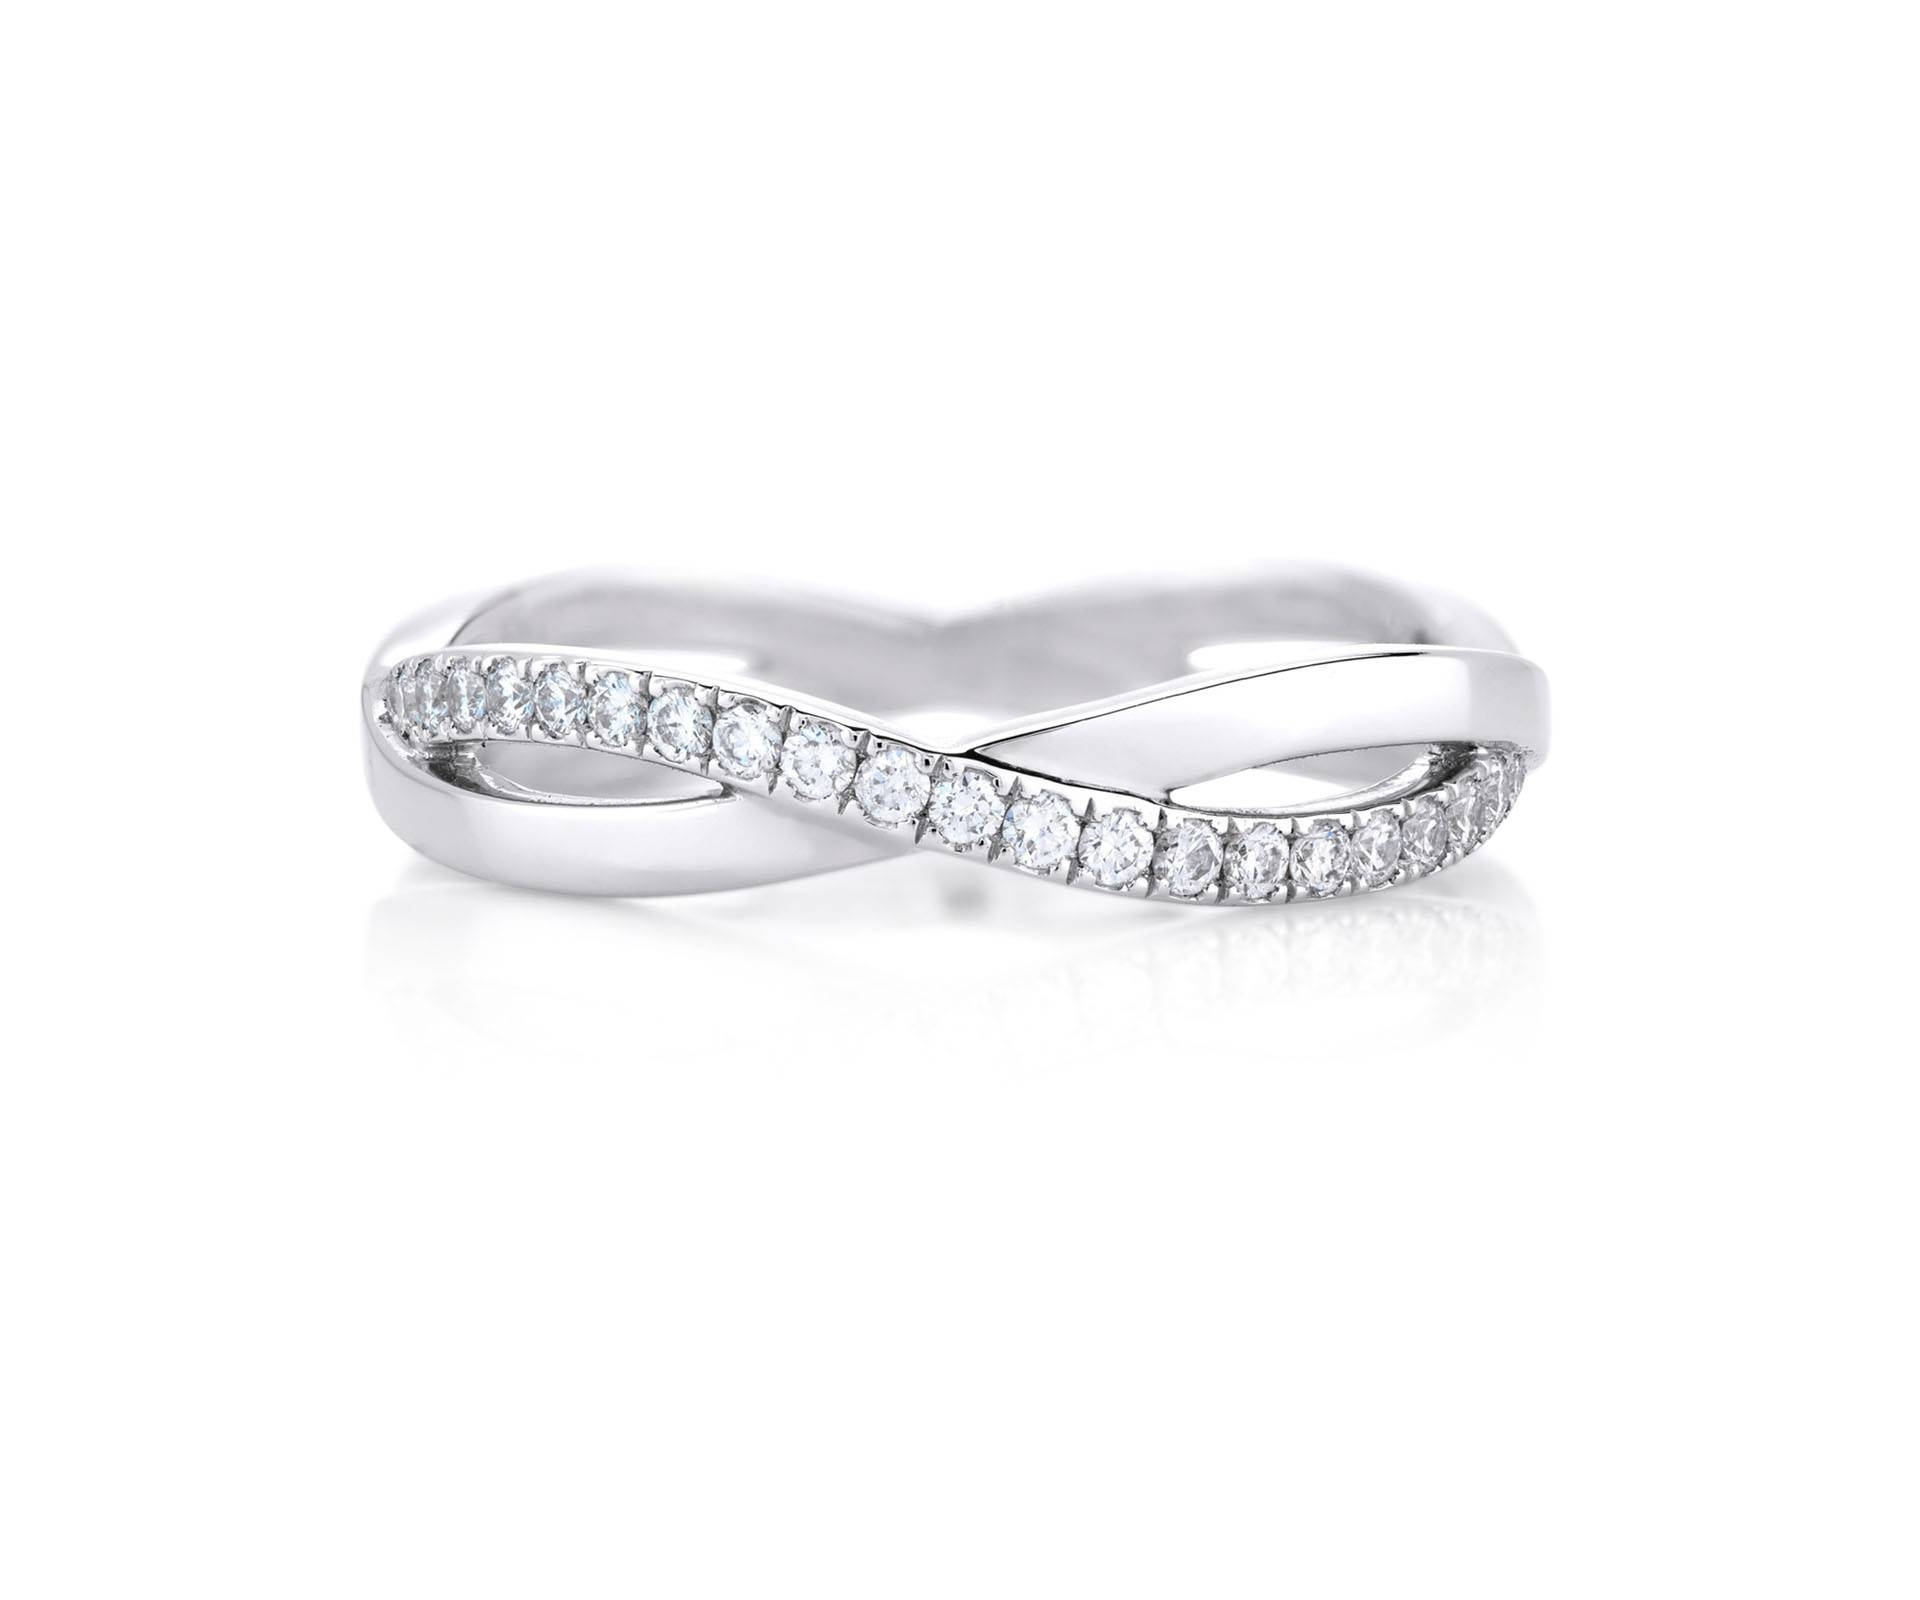 De Beers Infinity | Jewellery With Regard To Infinity Band Wedding Rings (View 4 of 15)